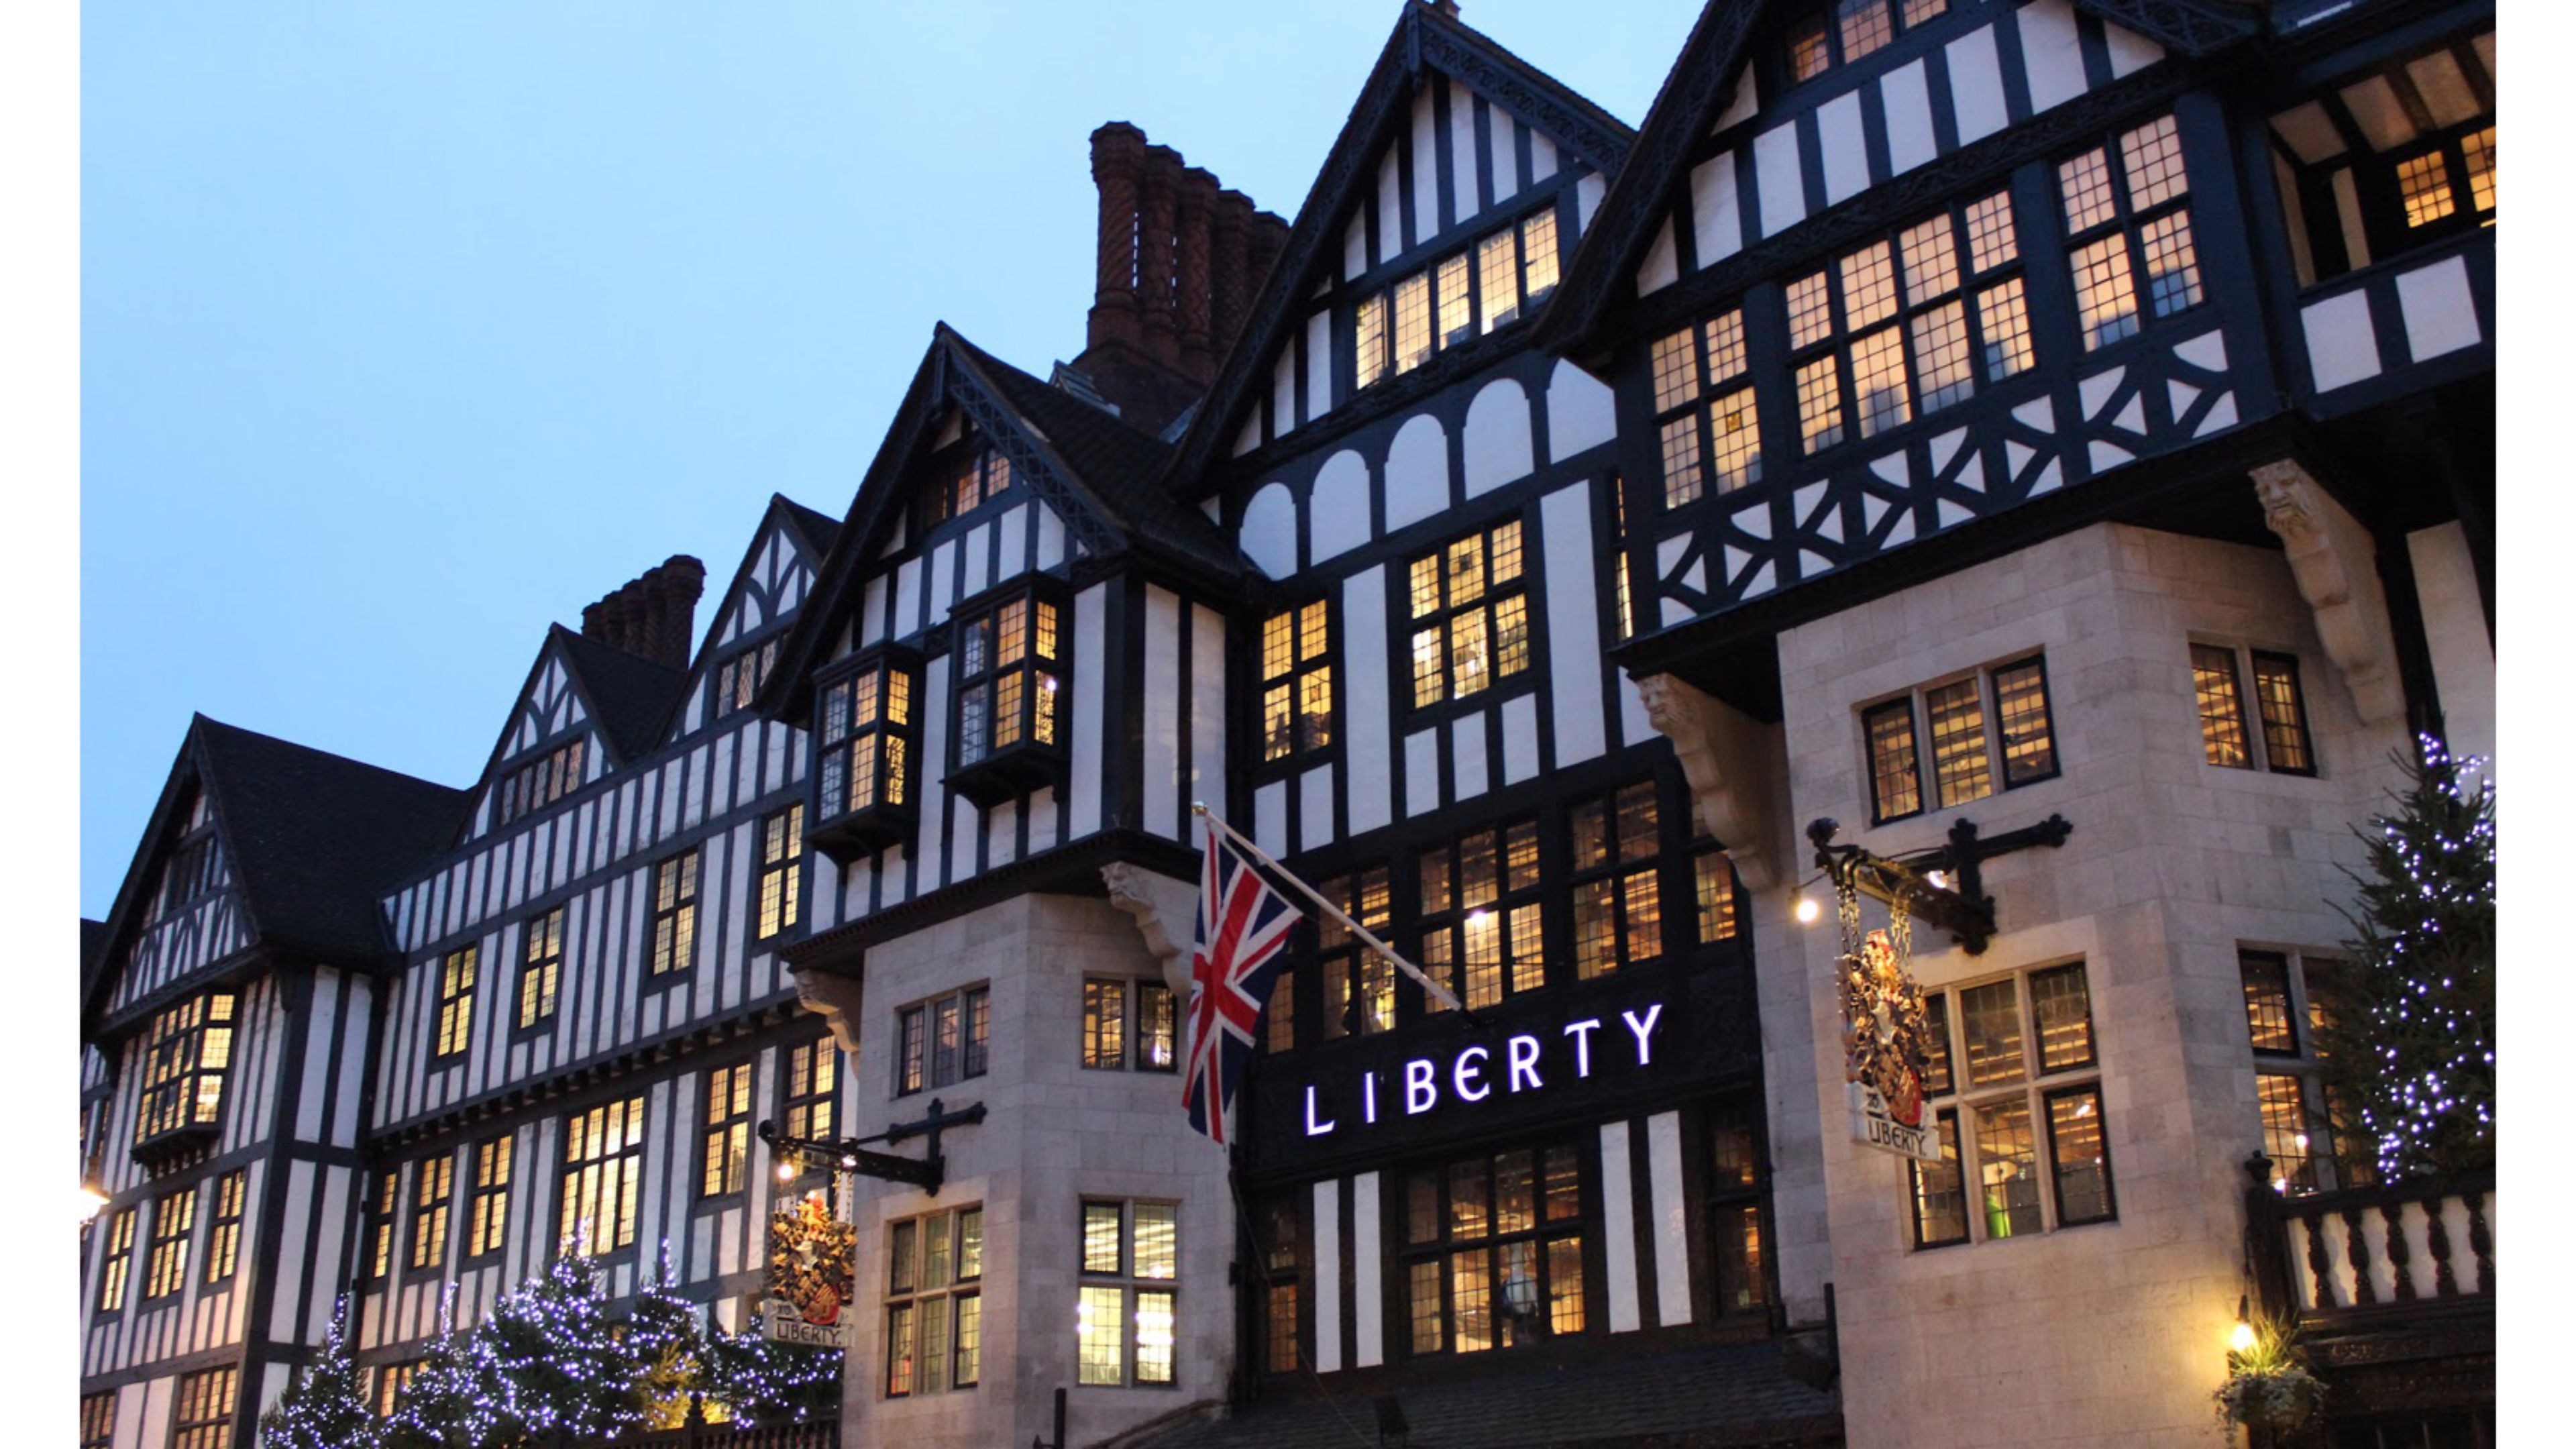 liberty house london hd pics download